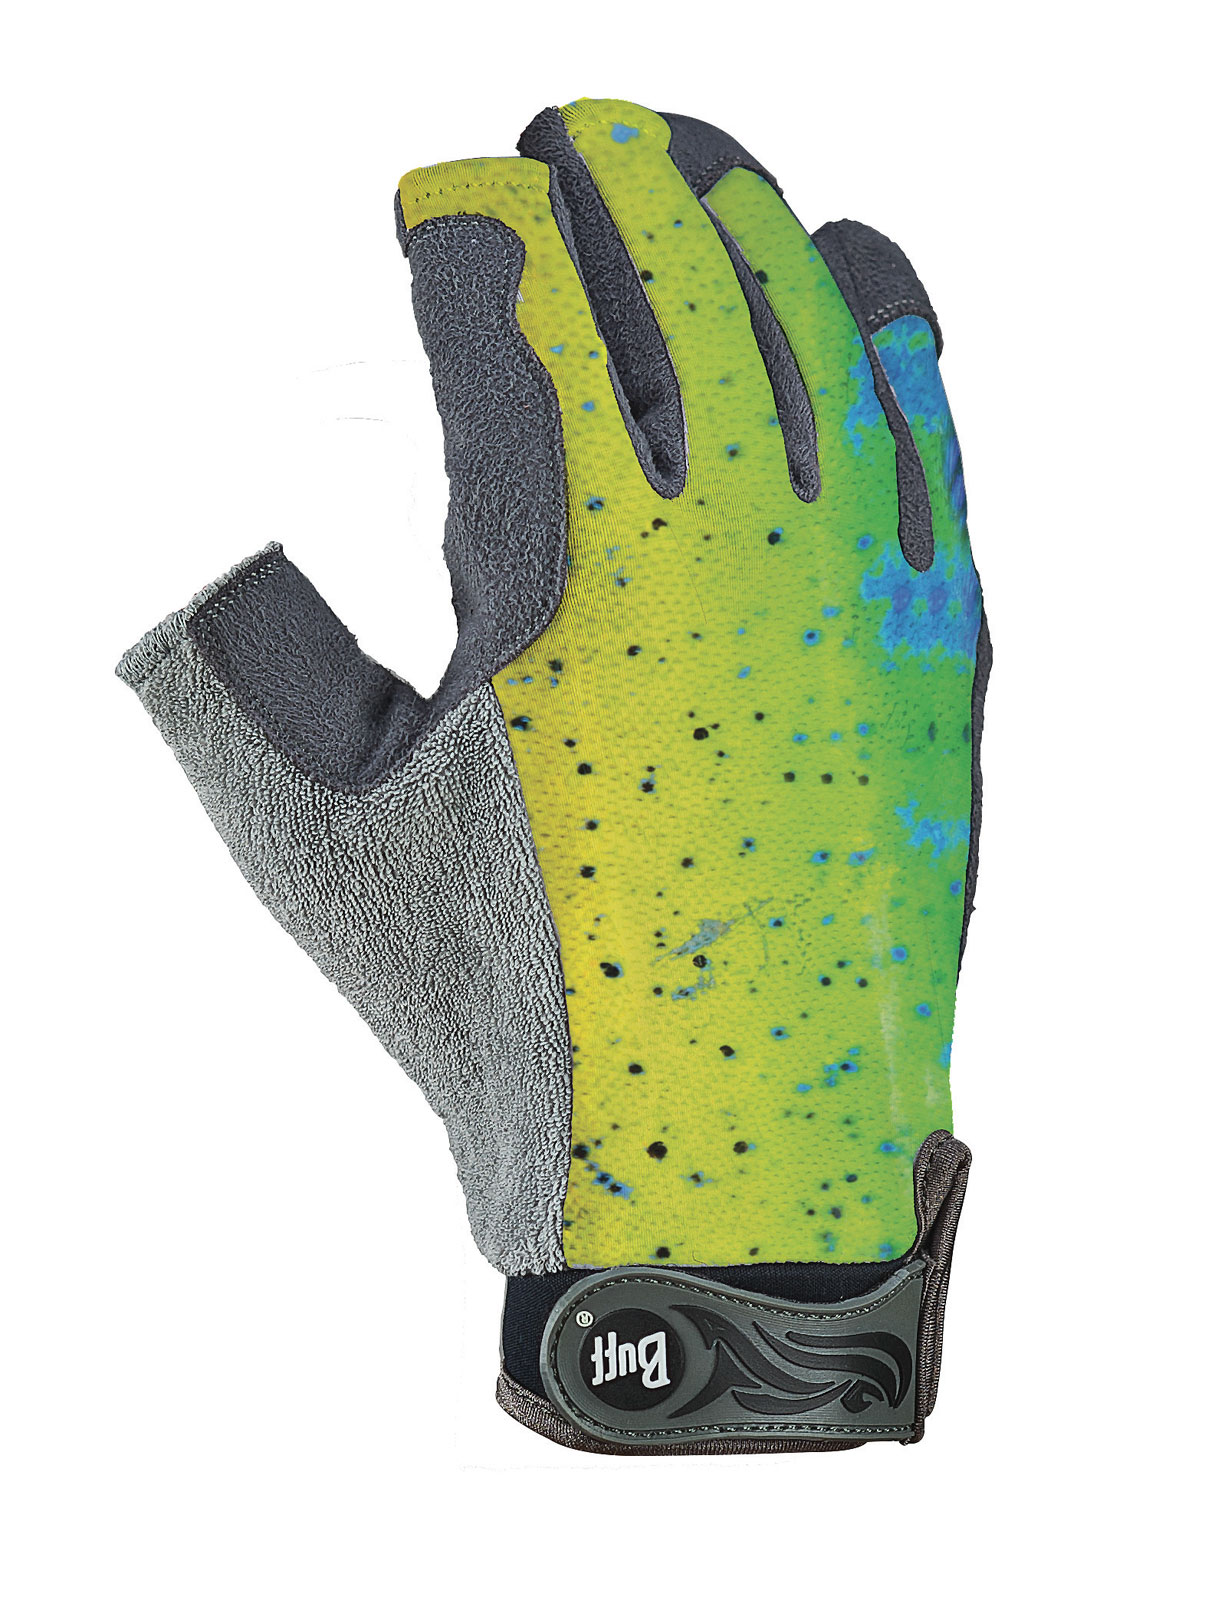 Buff pro series fly fishing fighting work angler gloves 3 for Fly fishing gloves